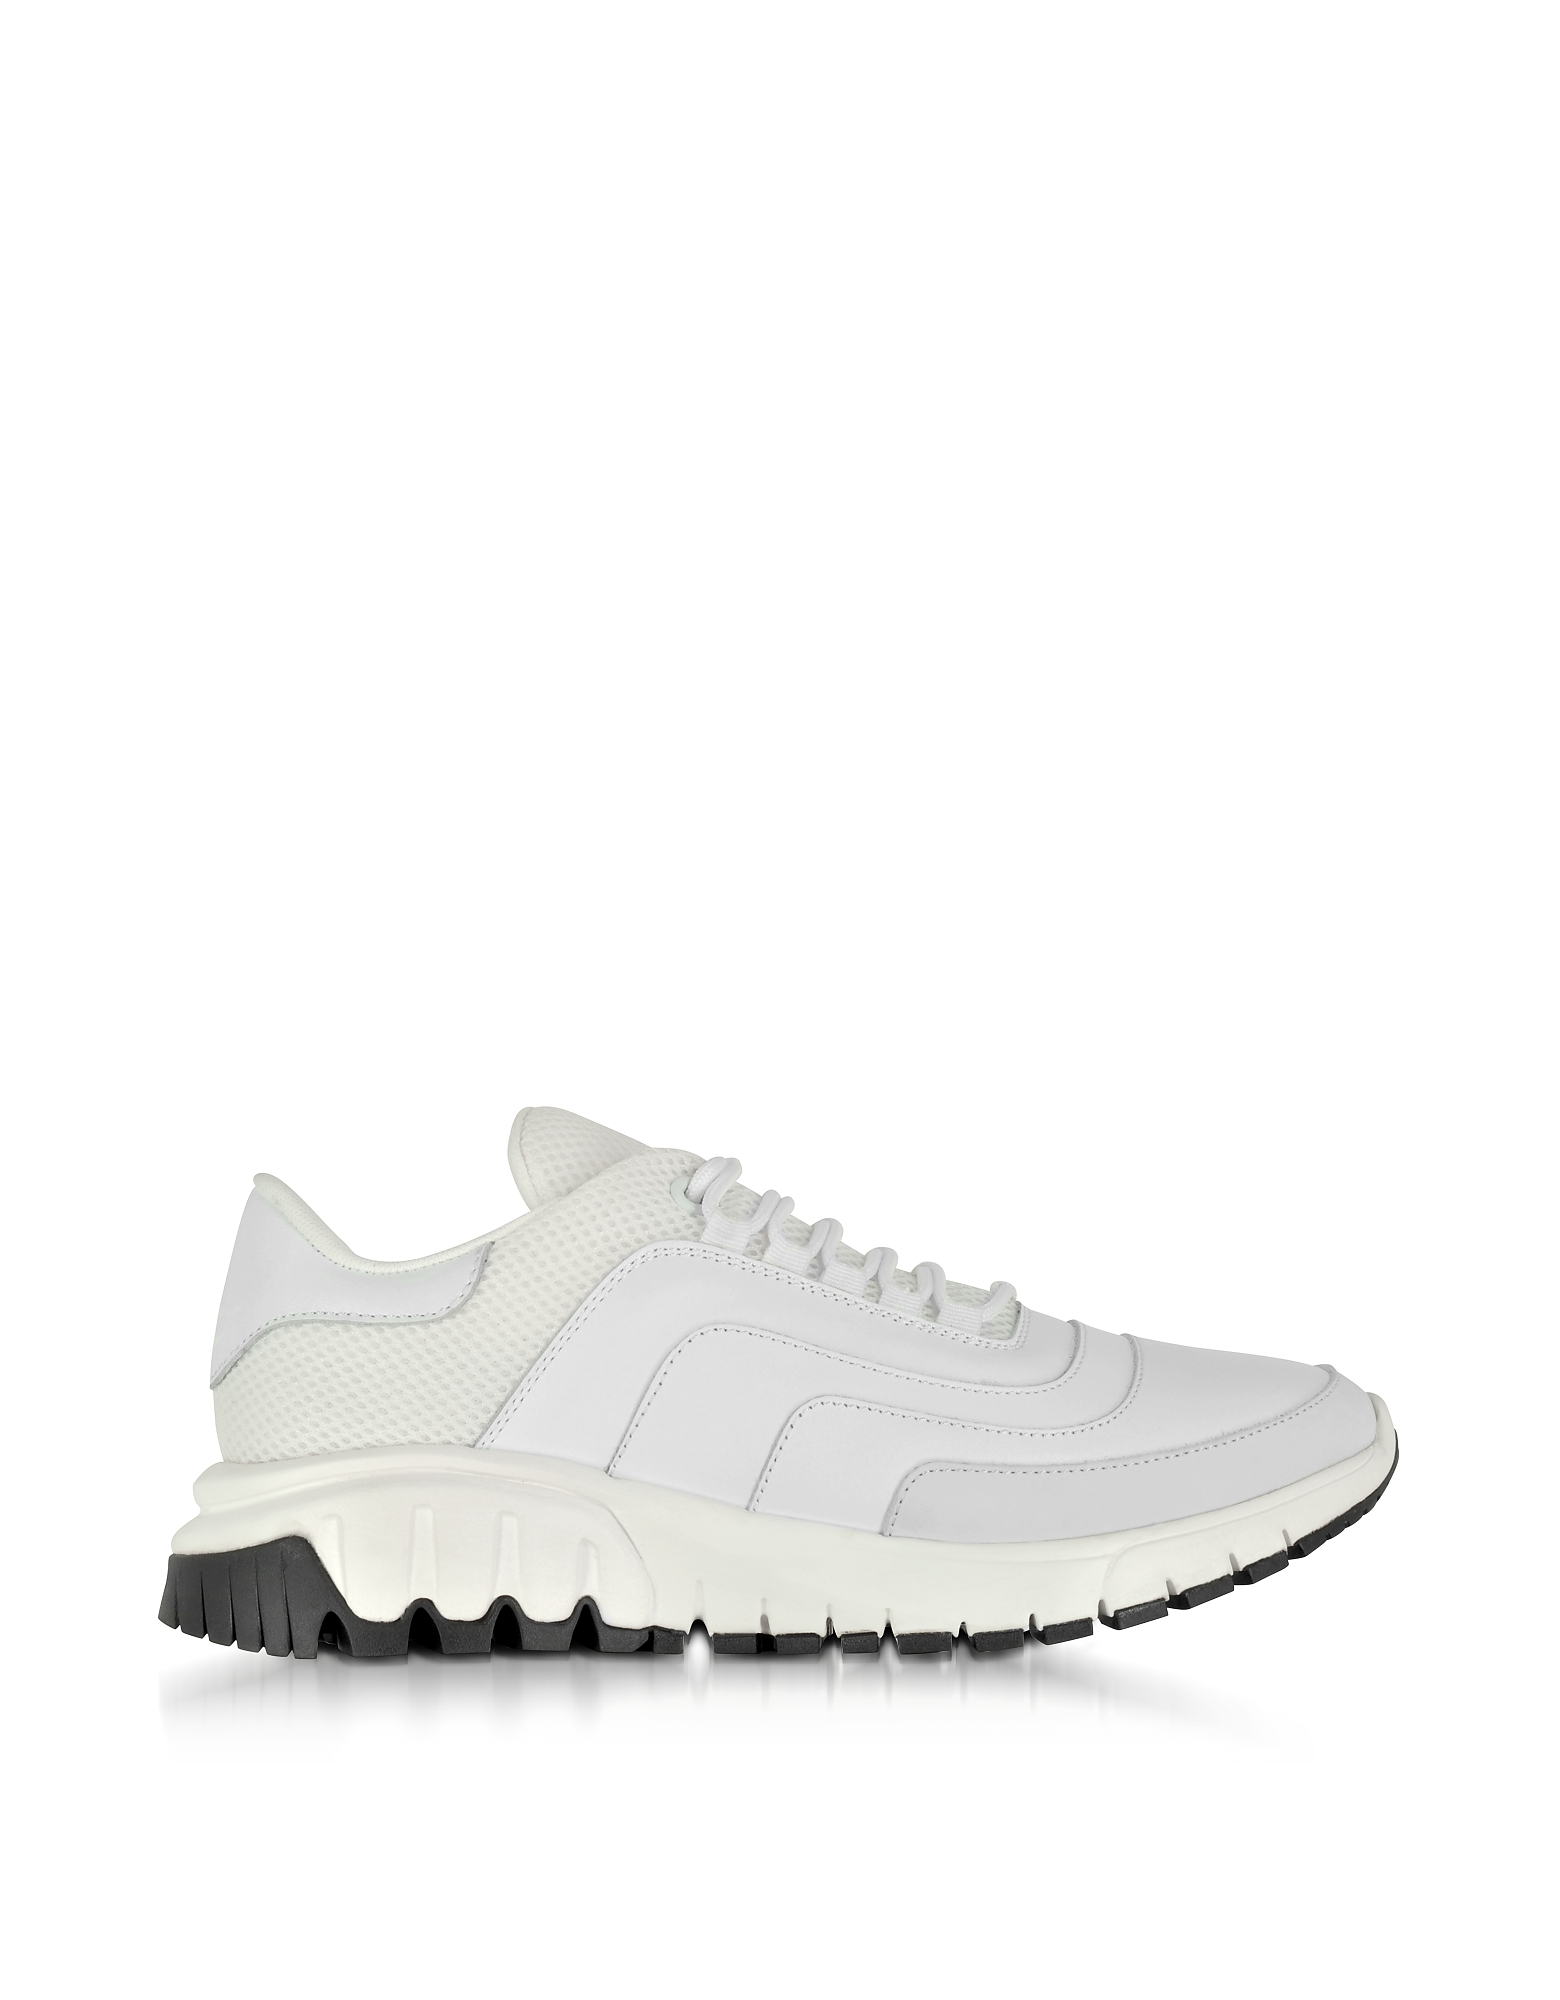 Neil Barrett Shoes, White Nylon, Leather and Nubuck Urban Runner